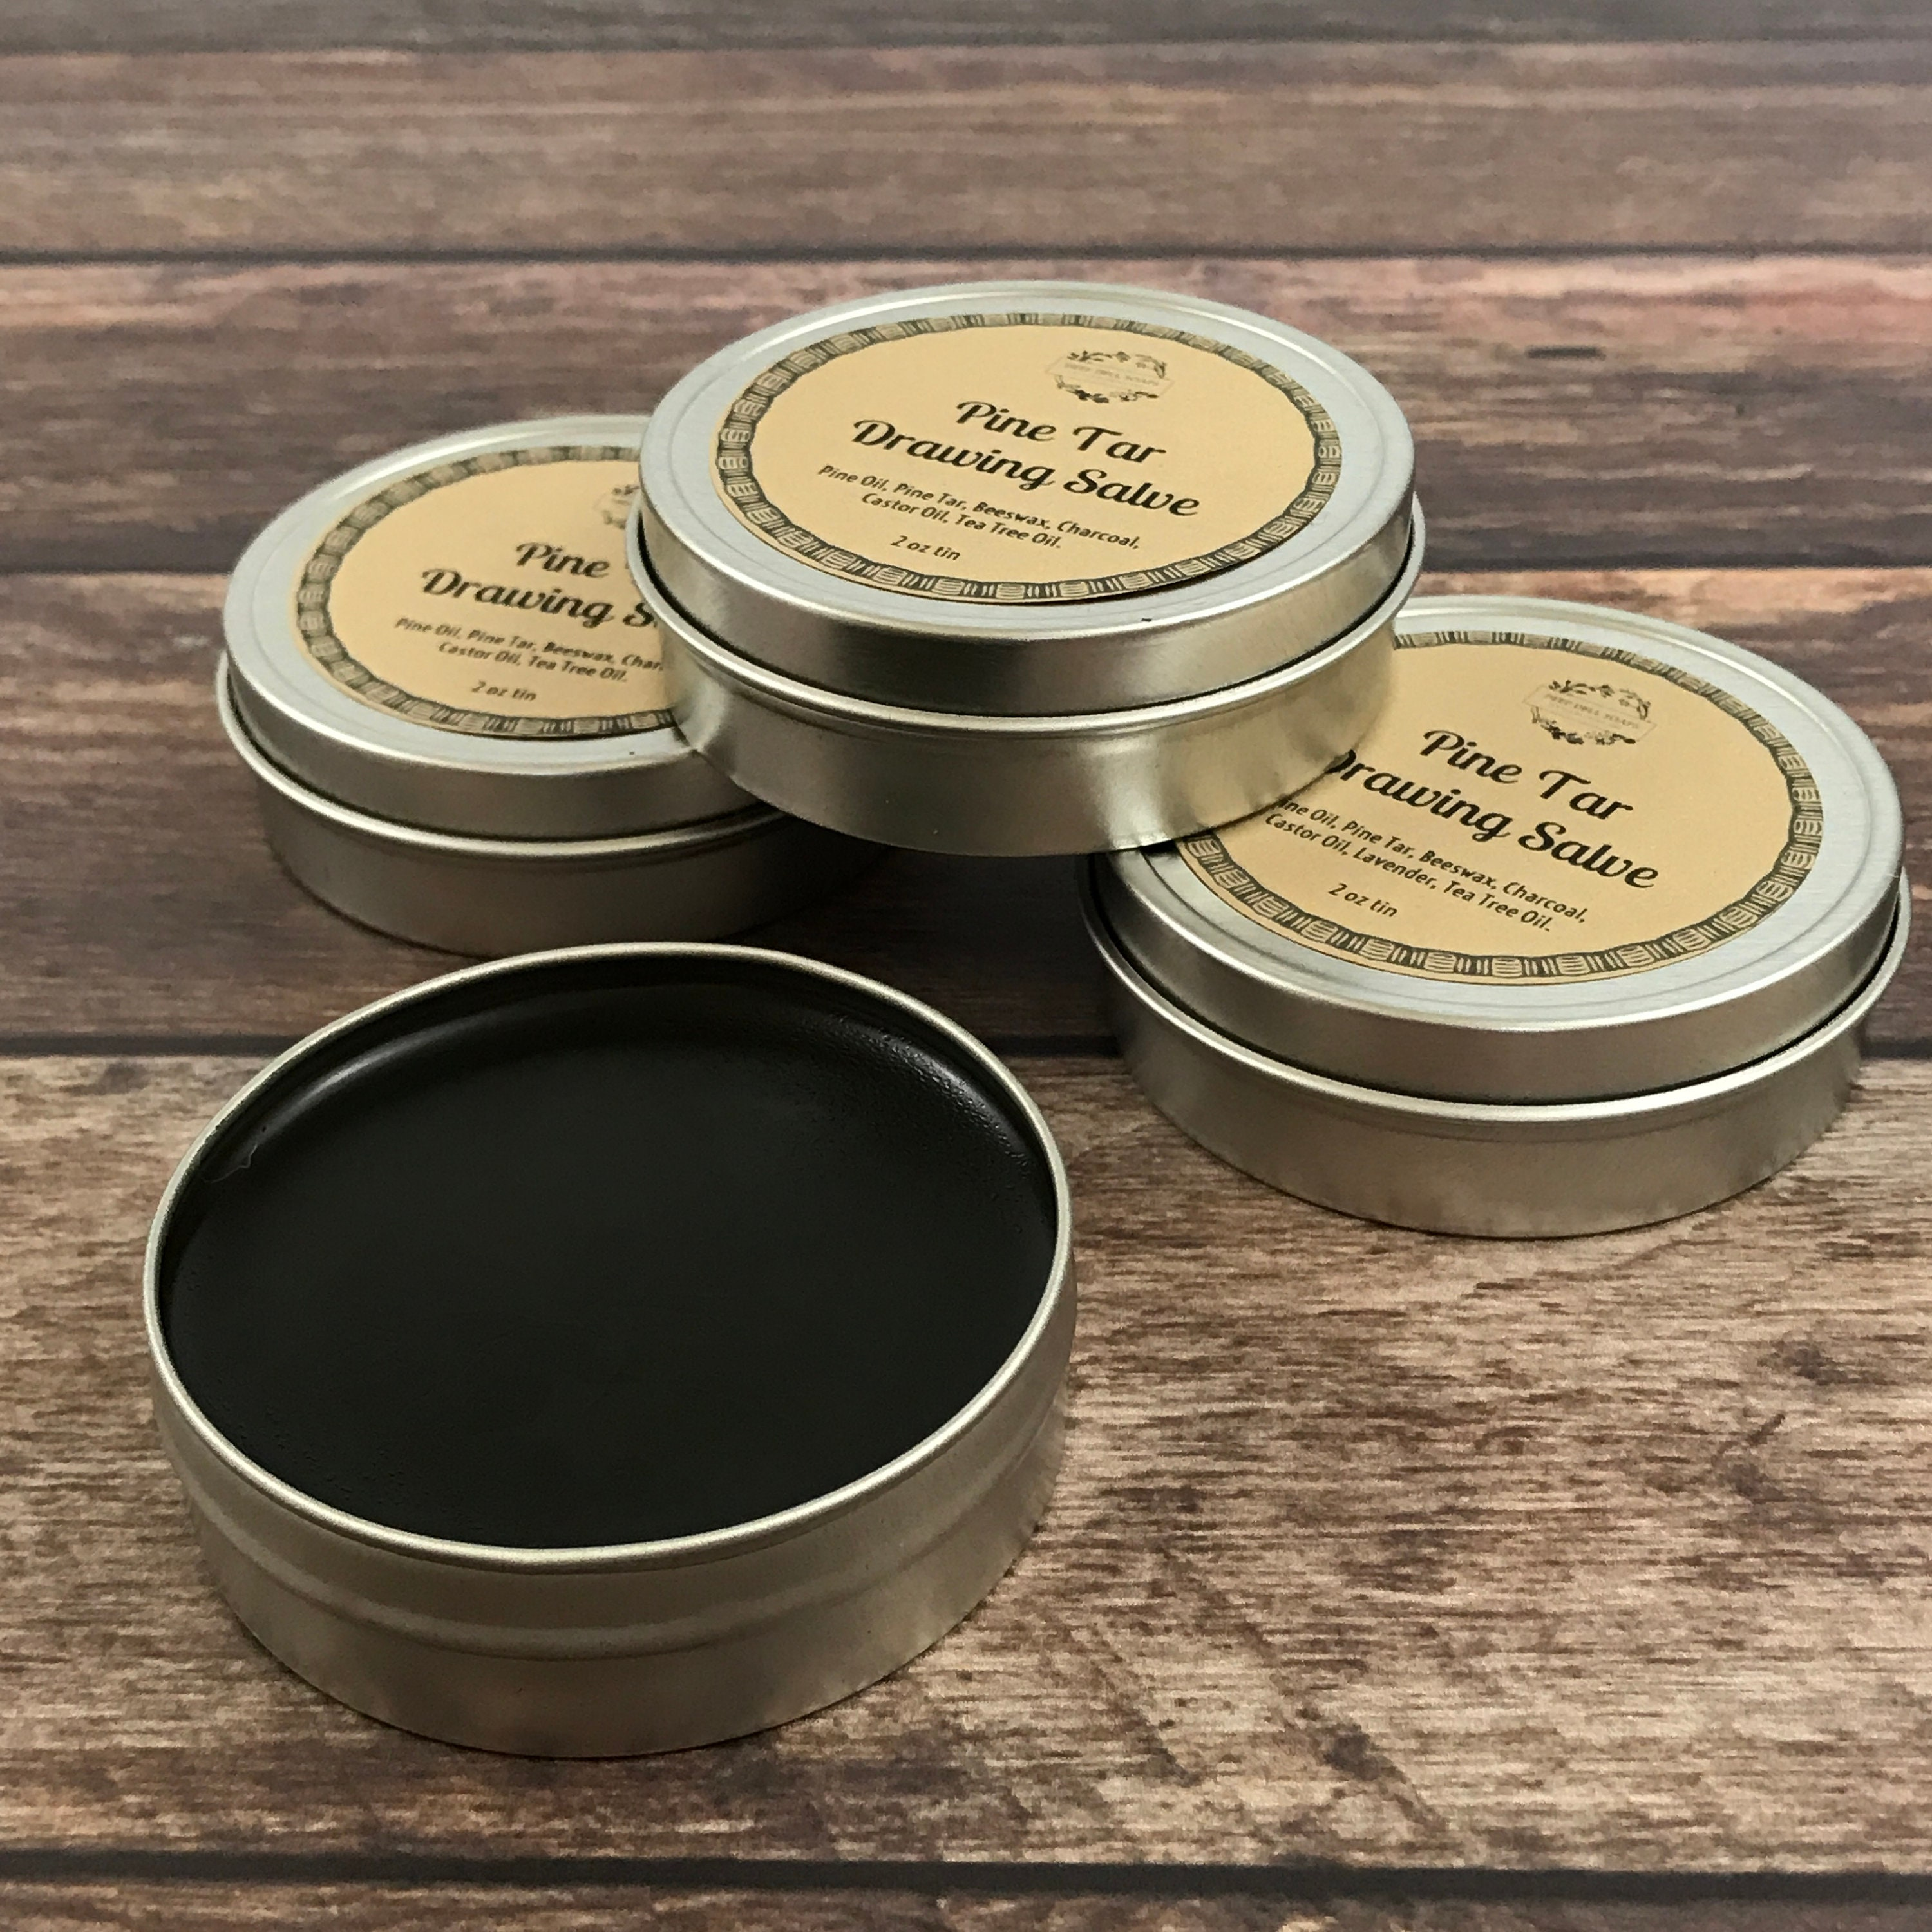 Pine Tar Drawing Salve - Organic Pine Tar - Creosote Free Pine Tar -  Activated Charcoal - Ichthammol Salve - Poison Ivy Ointment- Men's Gift